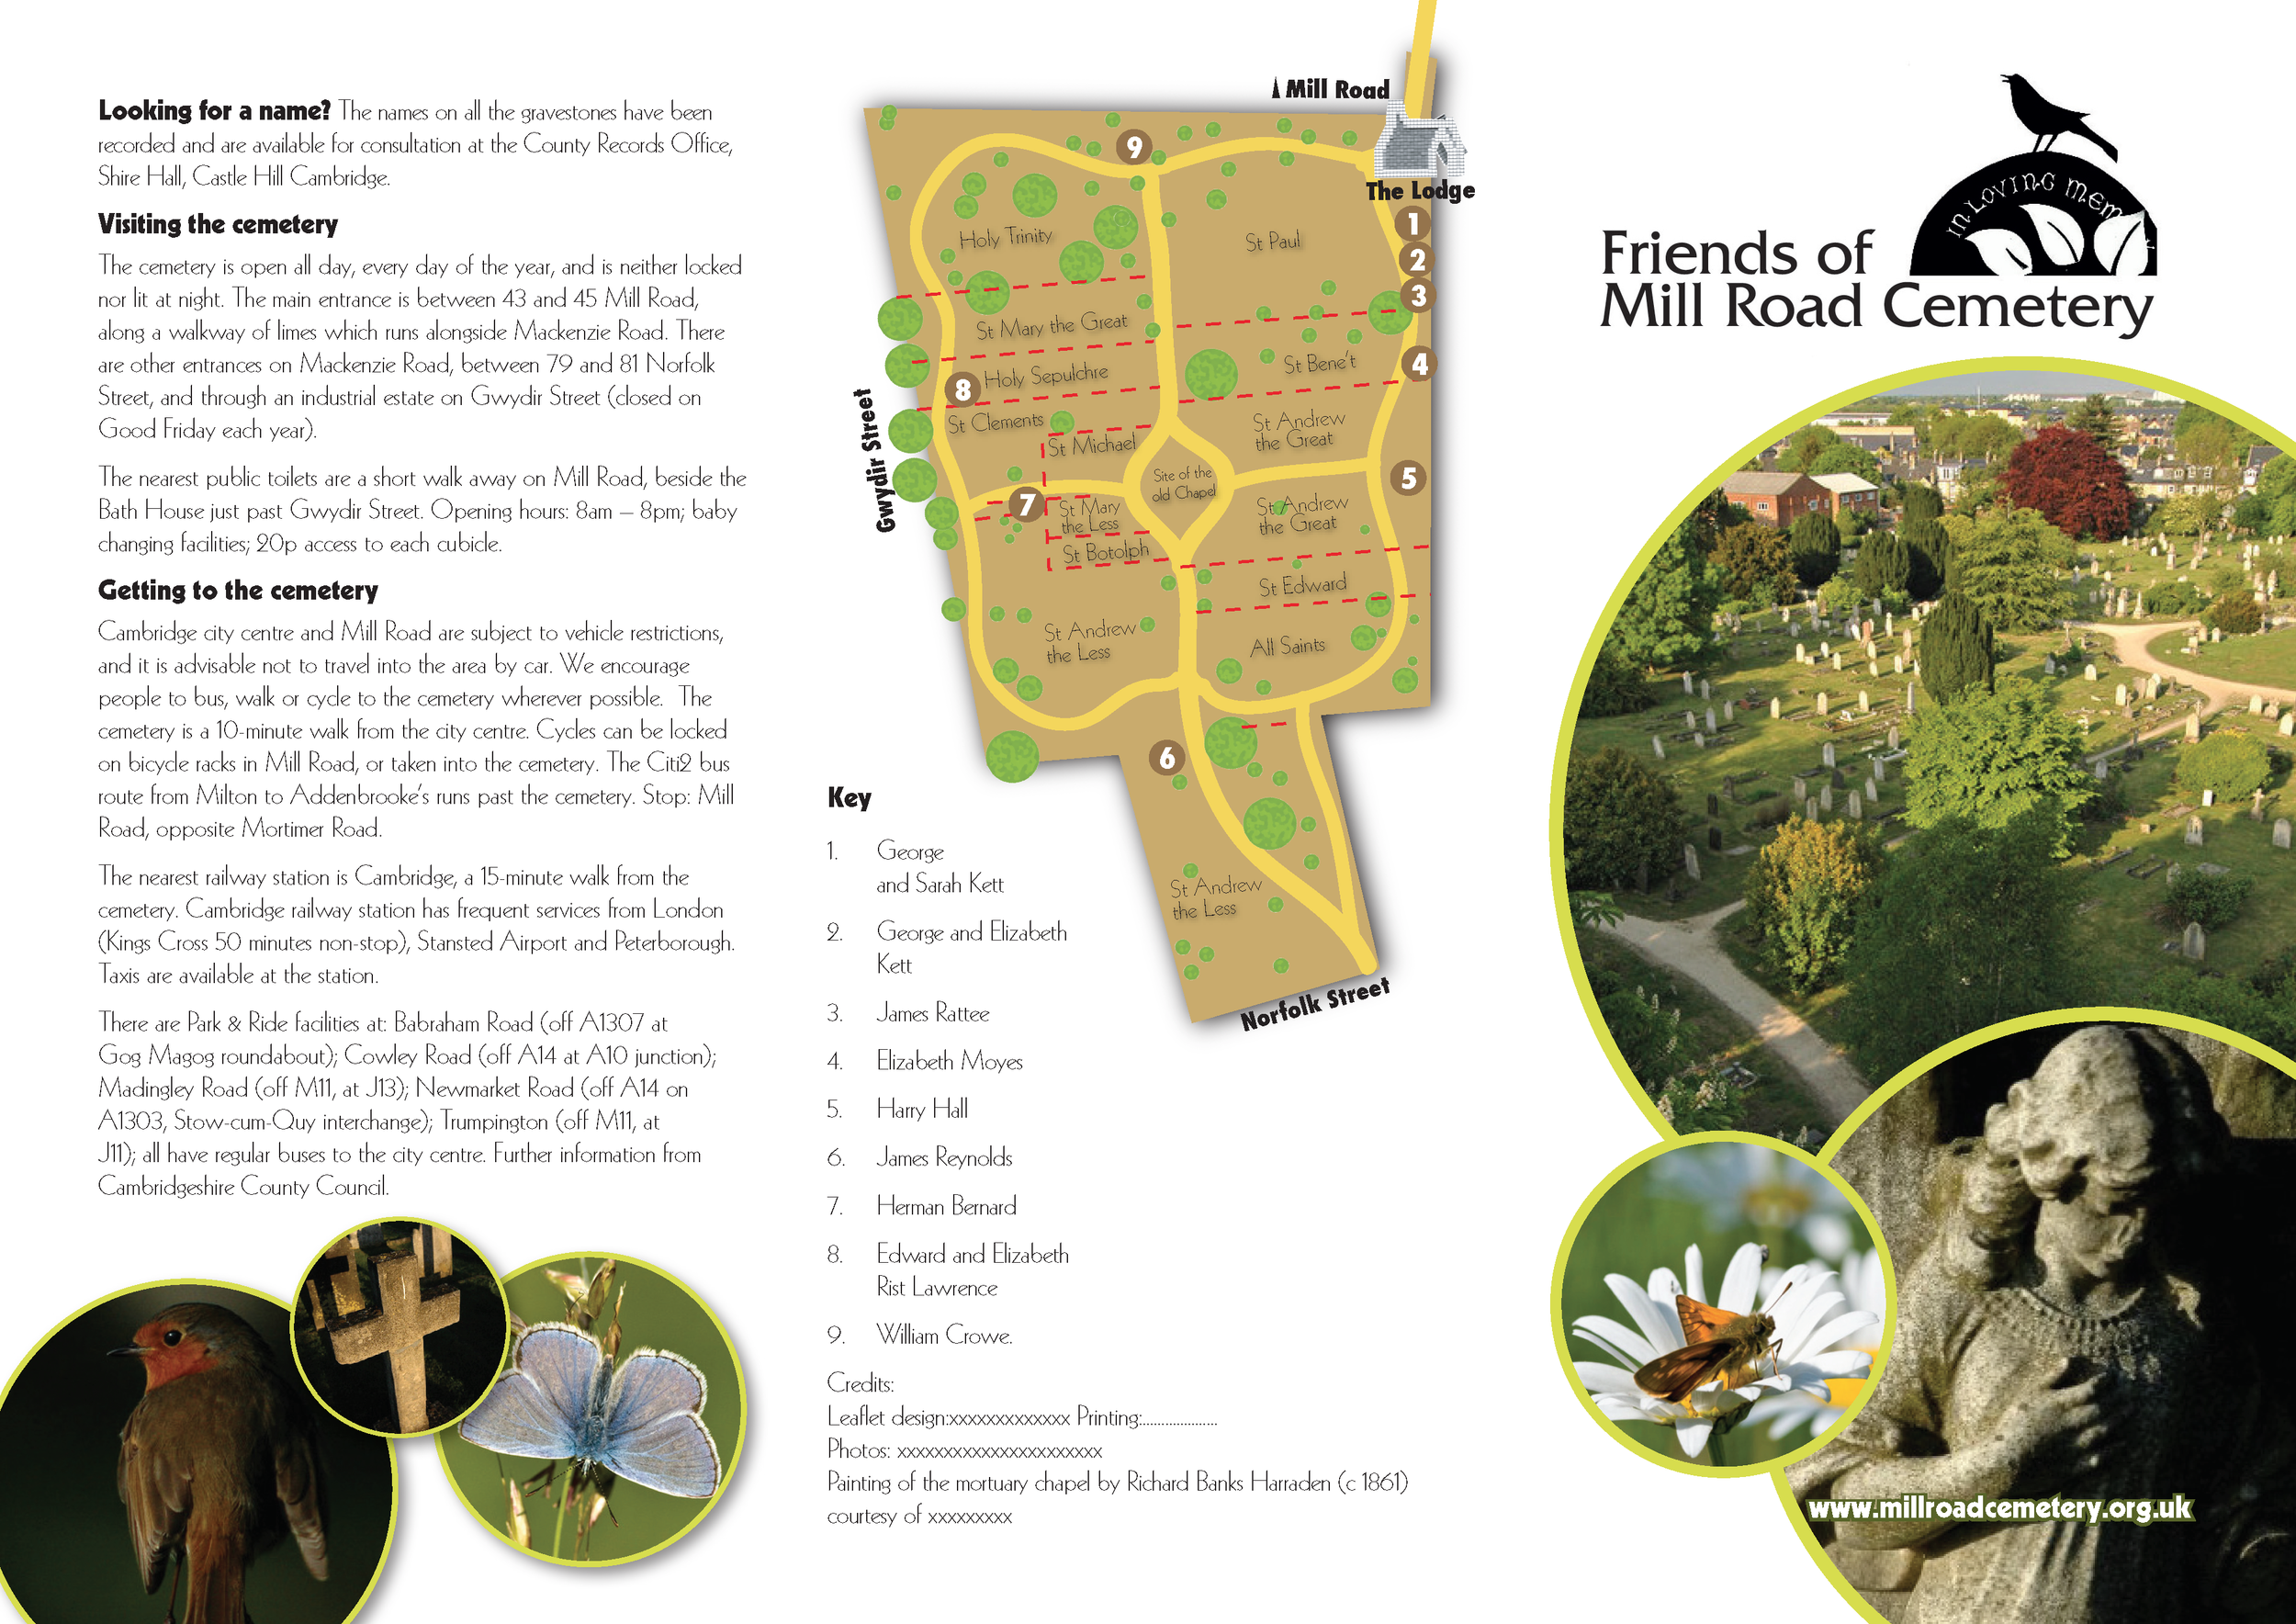 Illustration and leaflet design for Mill Road Cemetery, Cambridge